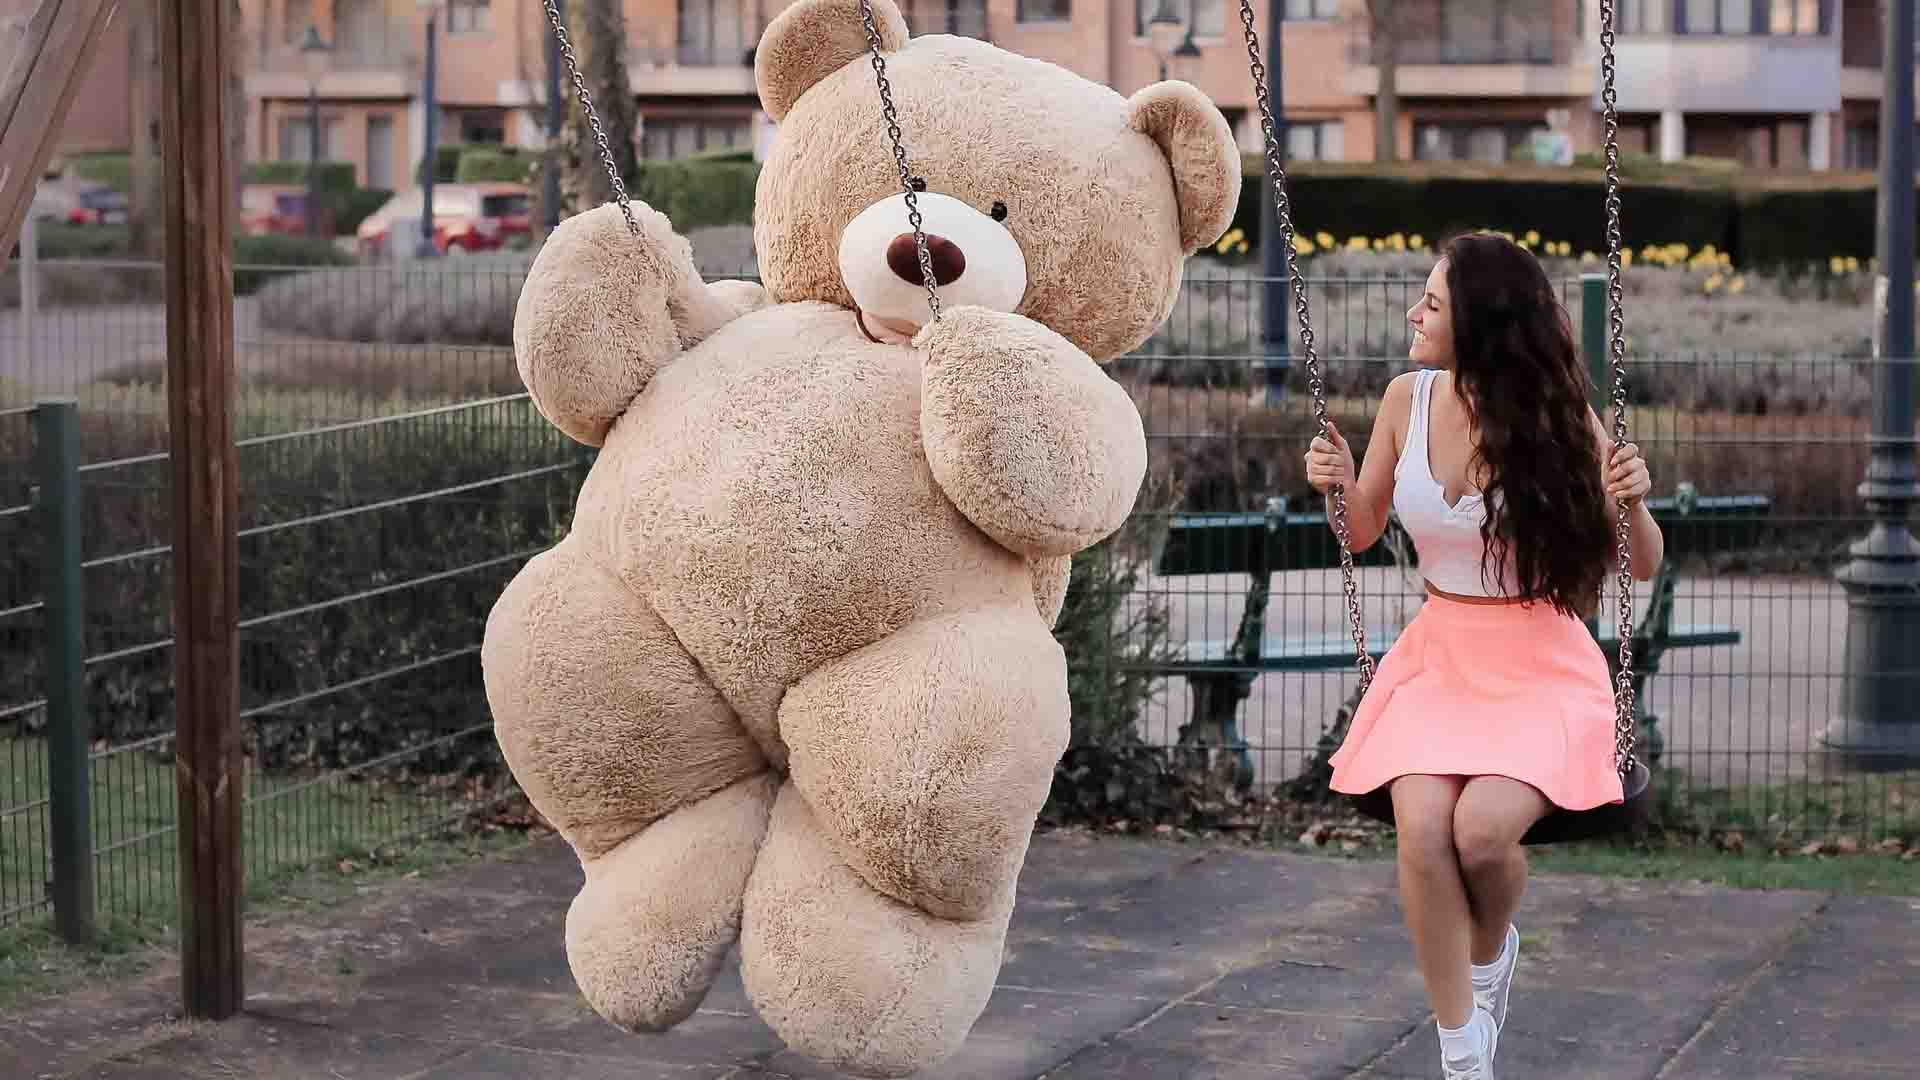 https://bears-teddy.ru/images/upload/Teddy-bear-and-girl-play-swing_1920x1080.jpg